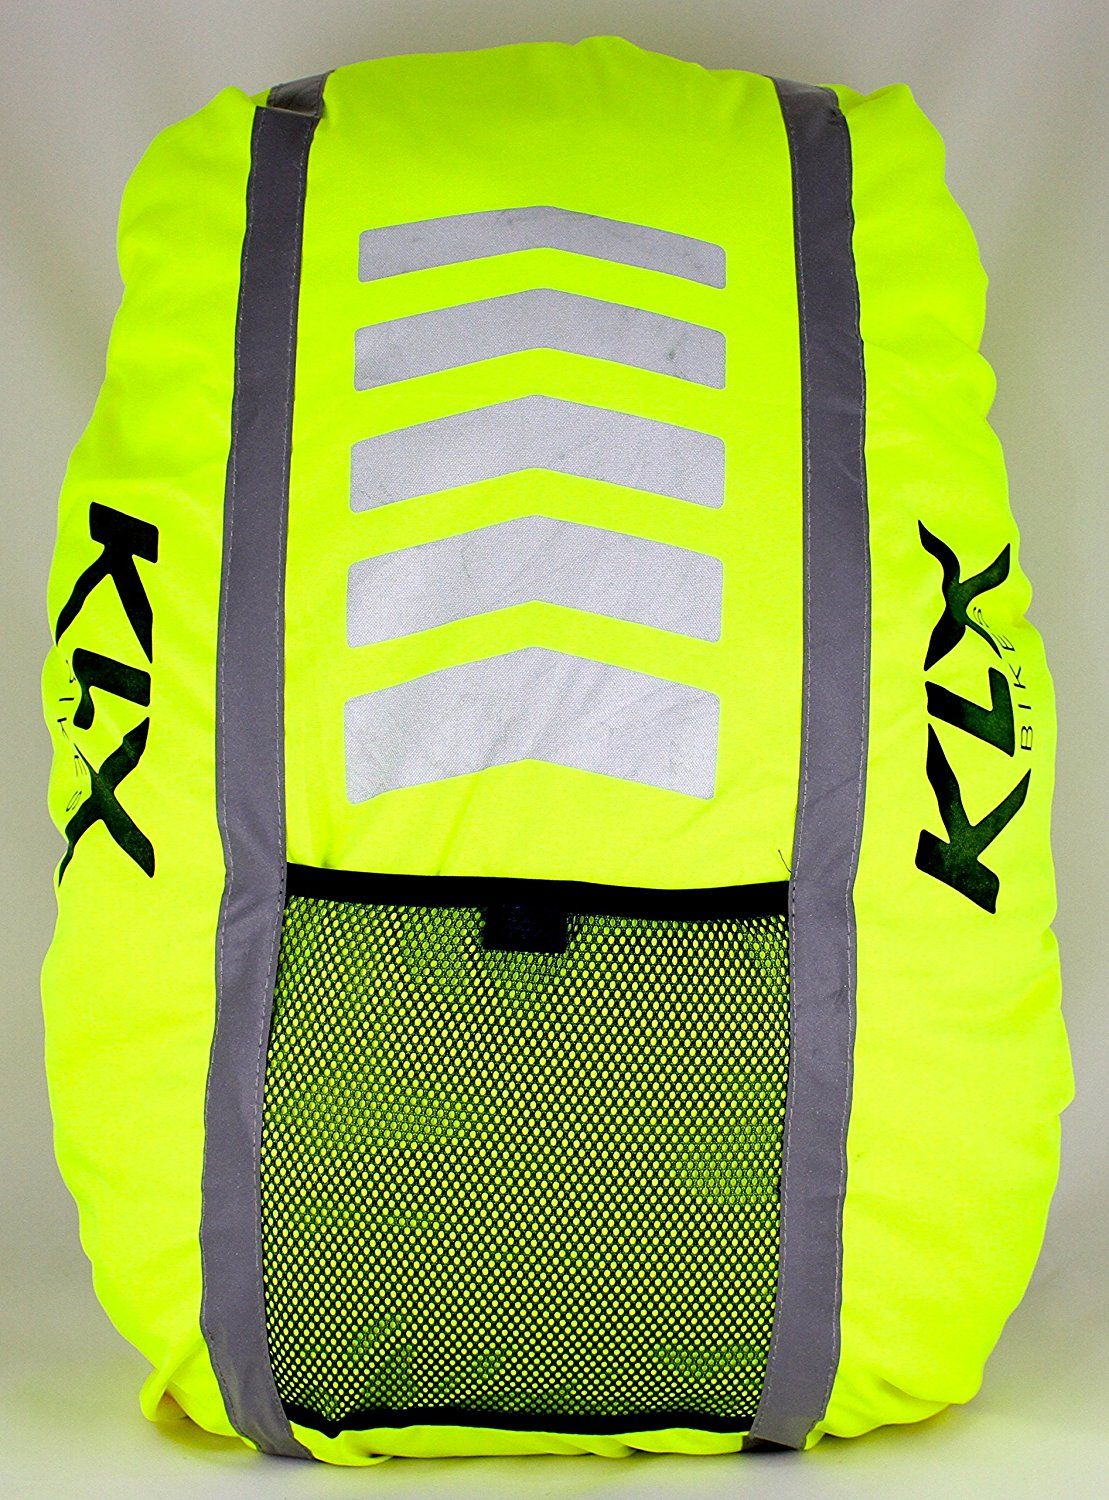 70efd768f4b7 KLX Heavy Duty High Visibility Reflective Waterproof Rucksack Backpack Cover  – New Improved